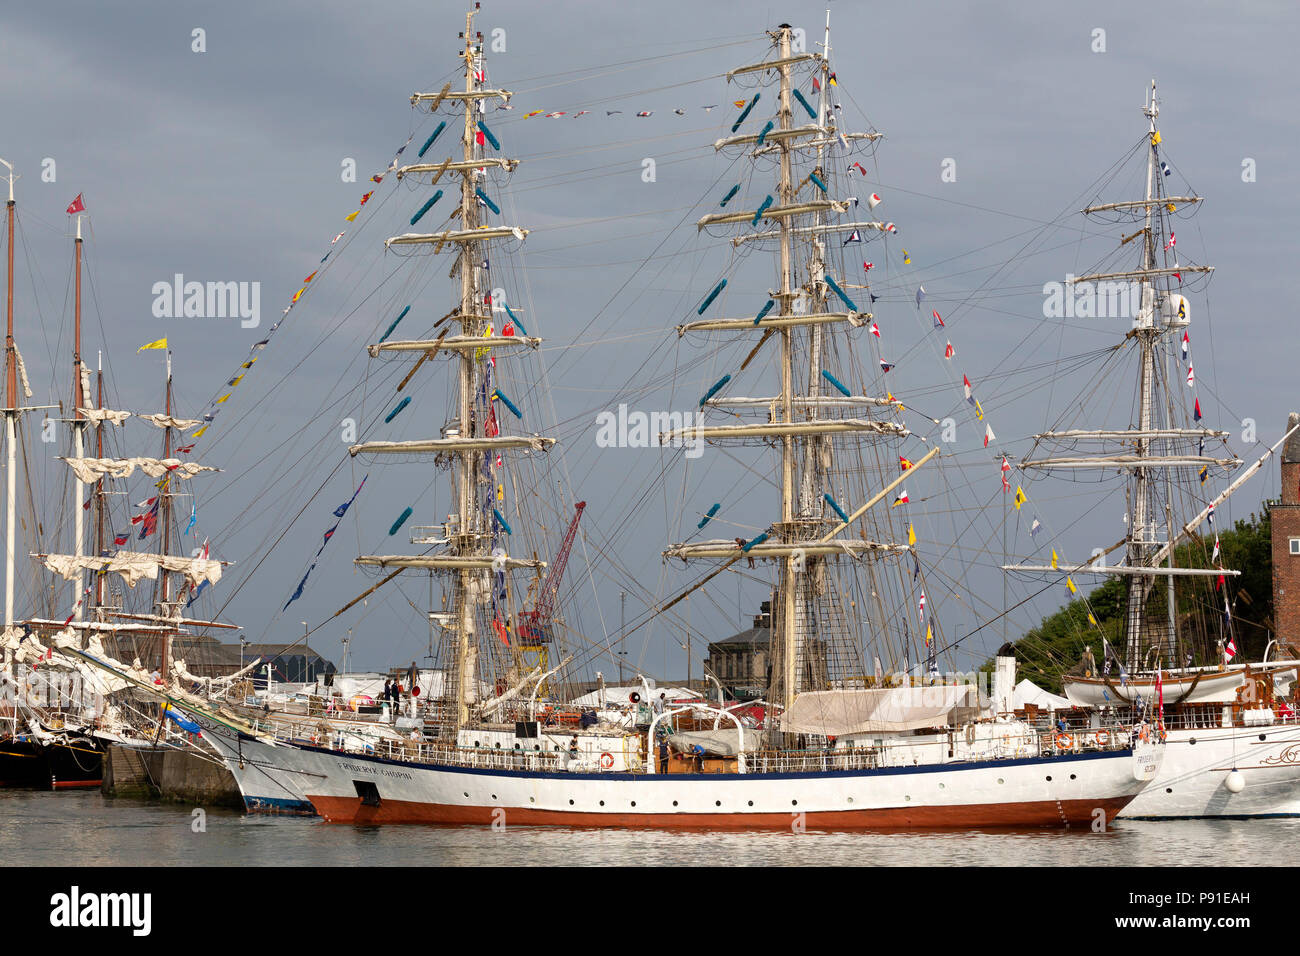 Sunderland, UK, 13 July 2018. The Fryderyk Chopin, docked in the Port of Sunderland, during the Tall Ships Race at Sunderland in north-east England. The tall ships will be in Sunderland from 11 to 14 July before departing on the first leg of the 2018 Tall Ships Race, to Ebsjerg in Denmark. Credit: Stuart Forster/Alamy Live News - Stock Image